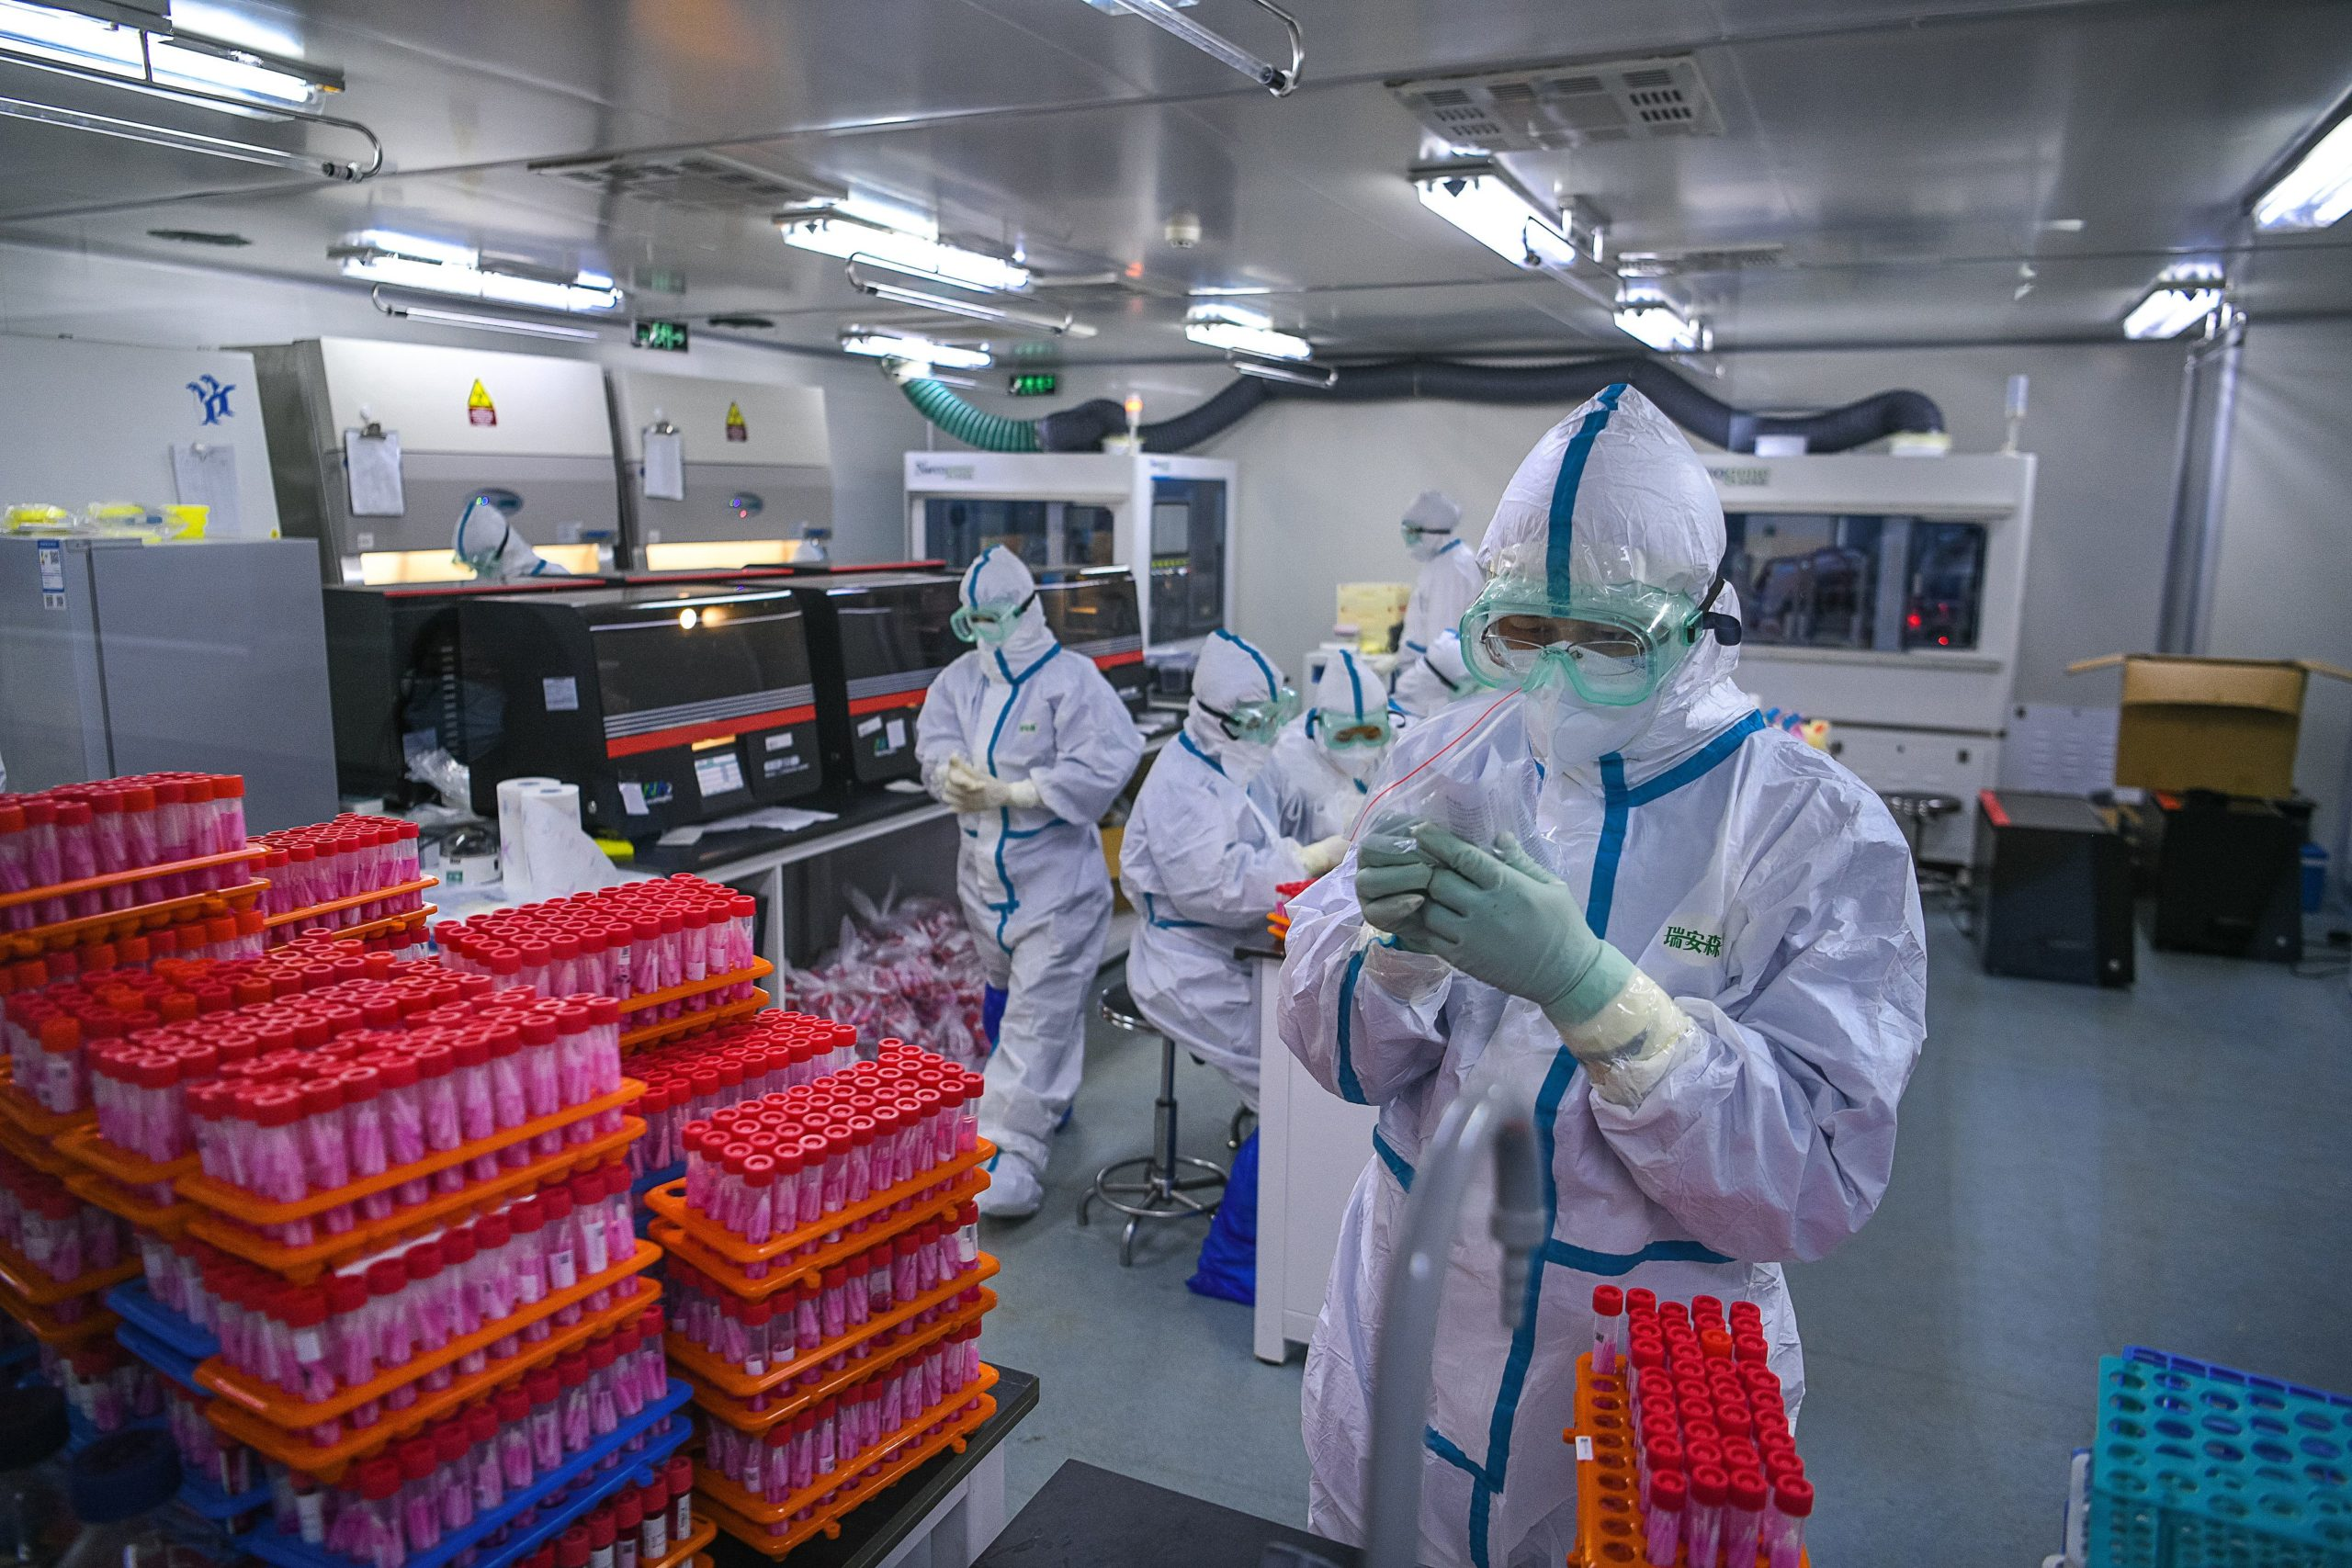 TOPSHOT - This photo taken on November 23, 2020 shows technicians processing Covid-19 coronavirus tests at a laboratory in Tianjin, China. (Photo by STR / CNS / AFP) / China OUT (Photo by STR/CNS/AFP via Getty Images)